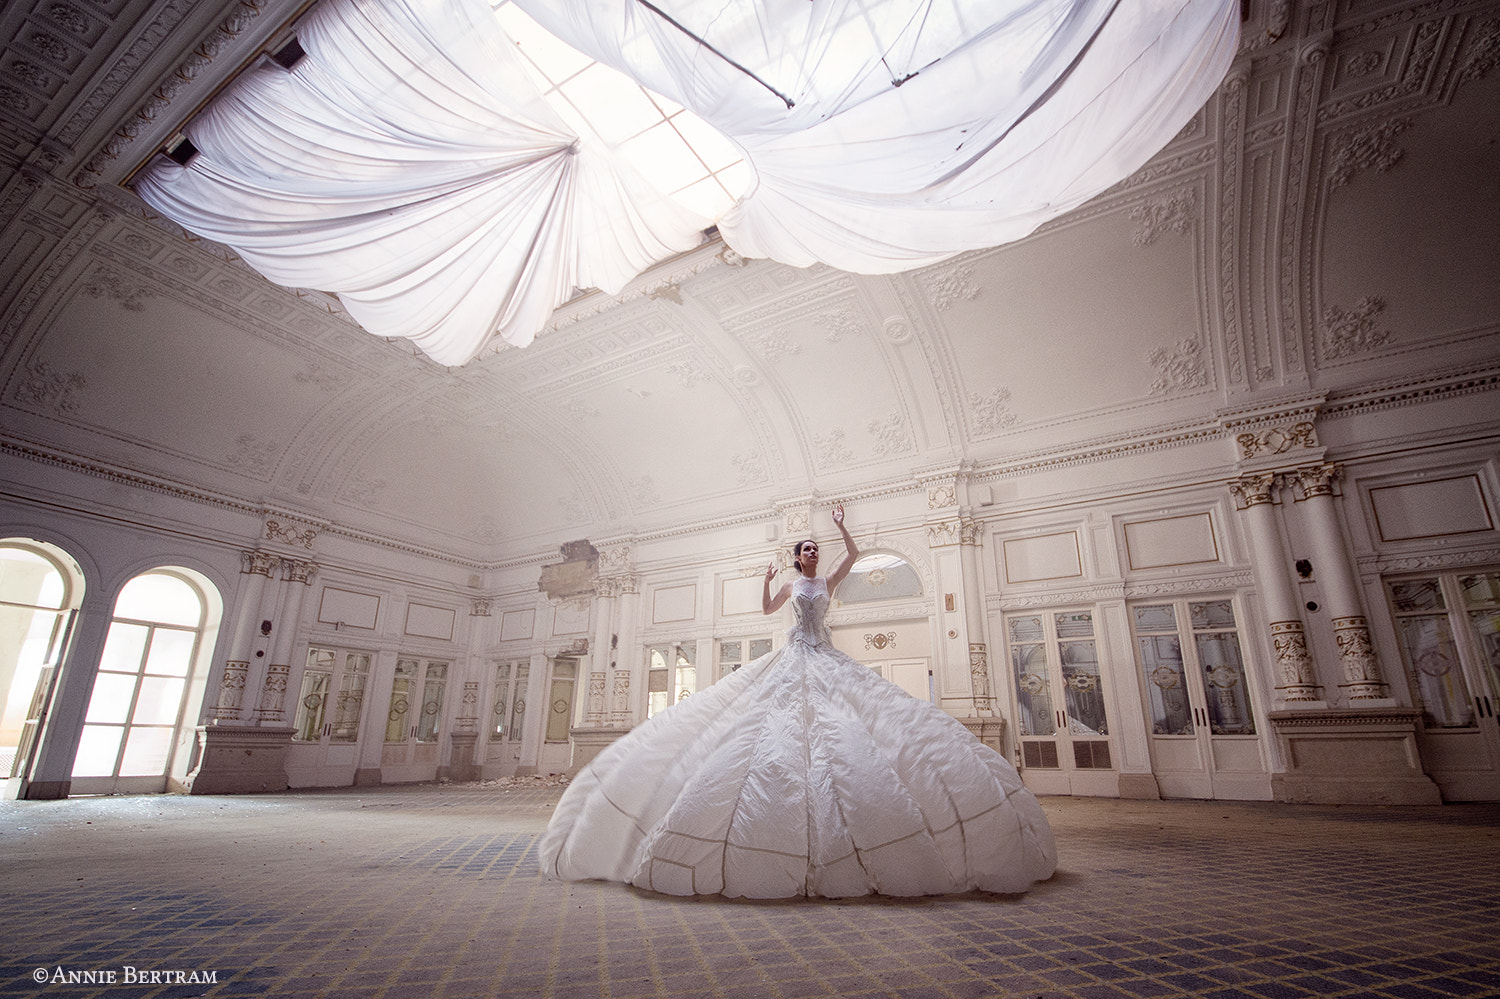 Ballroom White Dress Building Women Model Annie Bertram 500px 1500x999